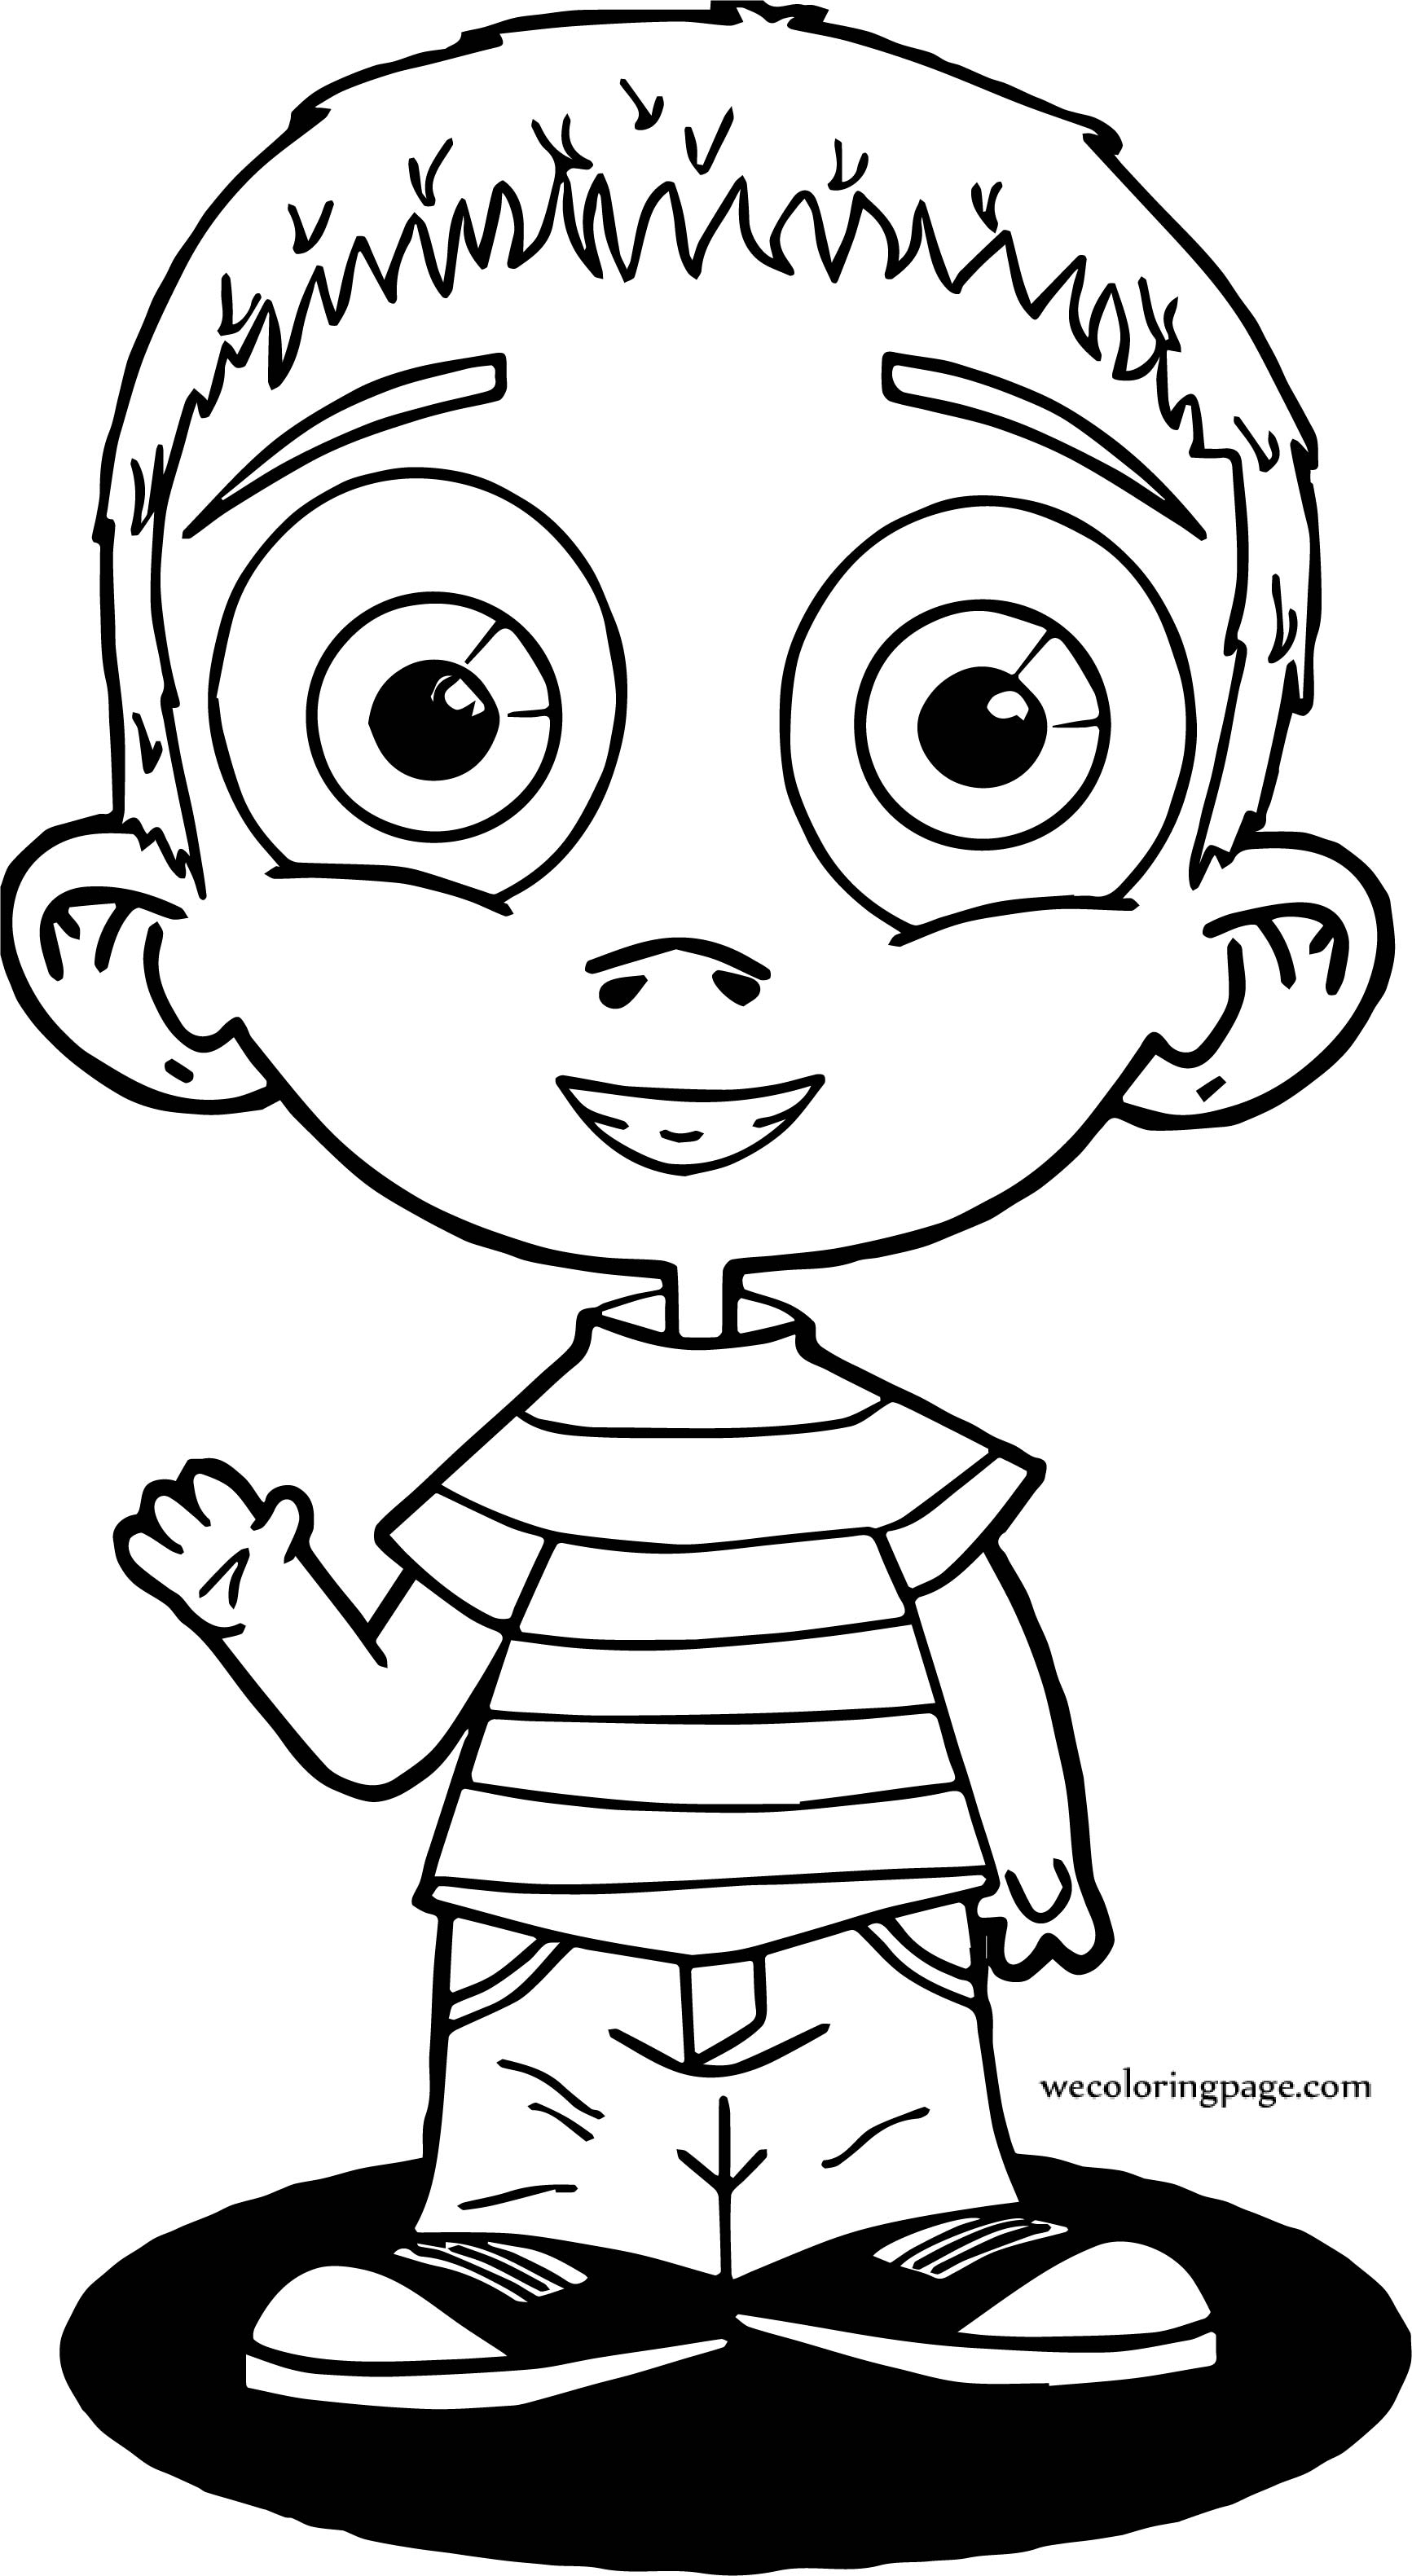 Boy Welcome Coloring Page